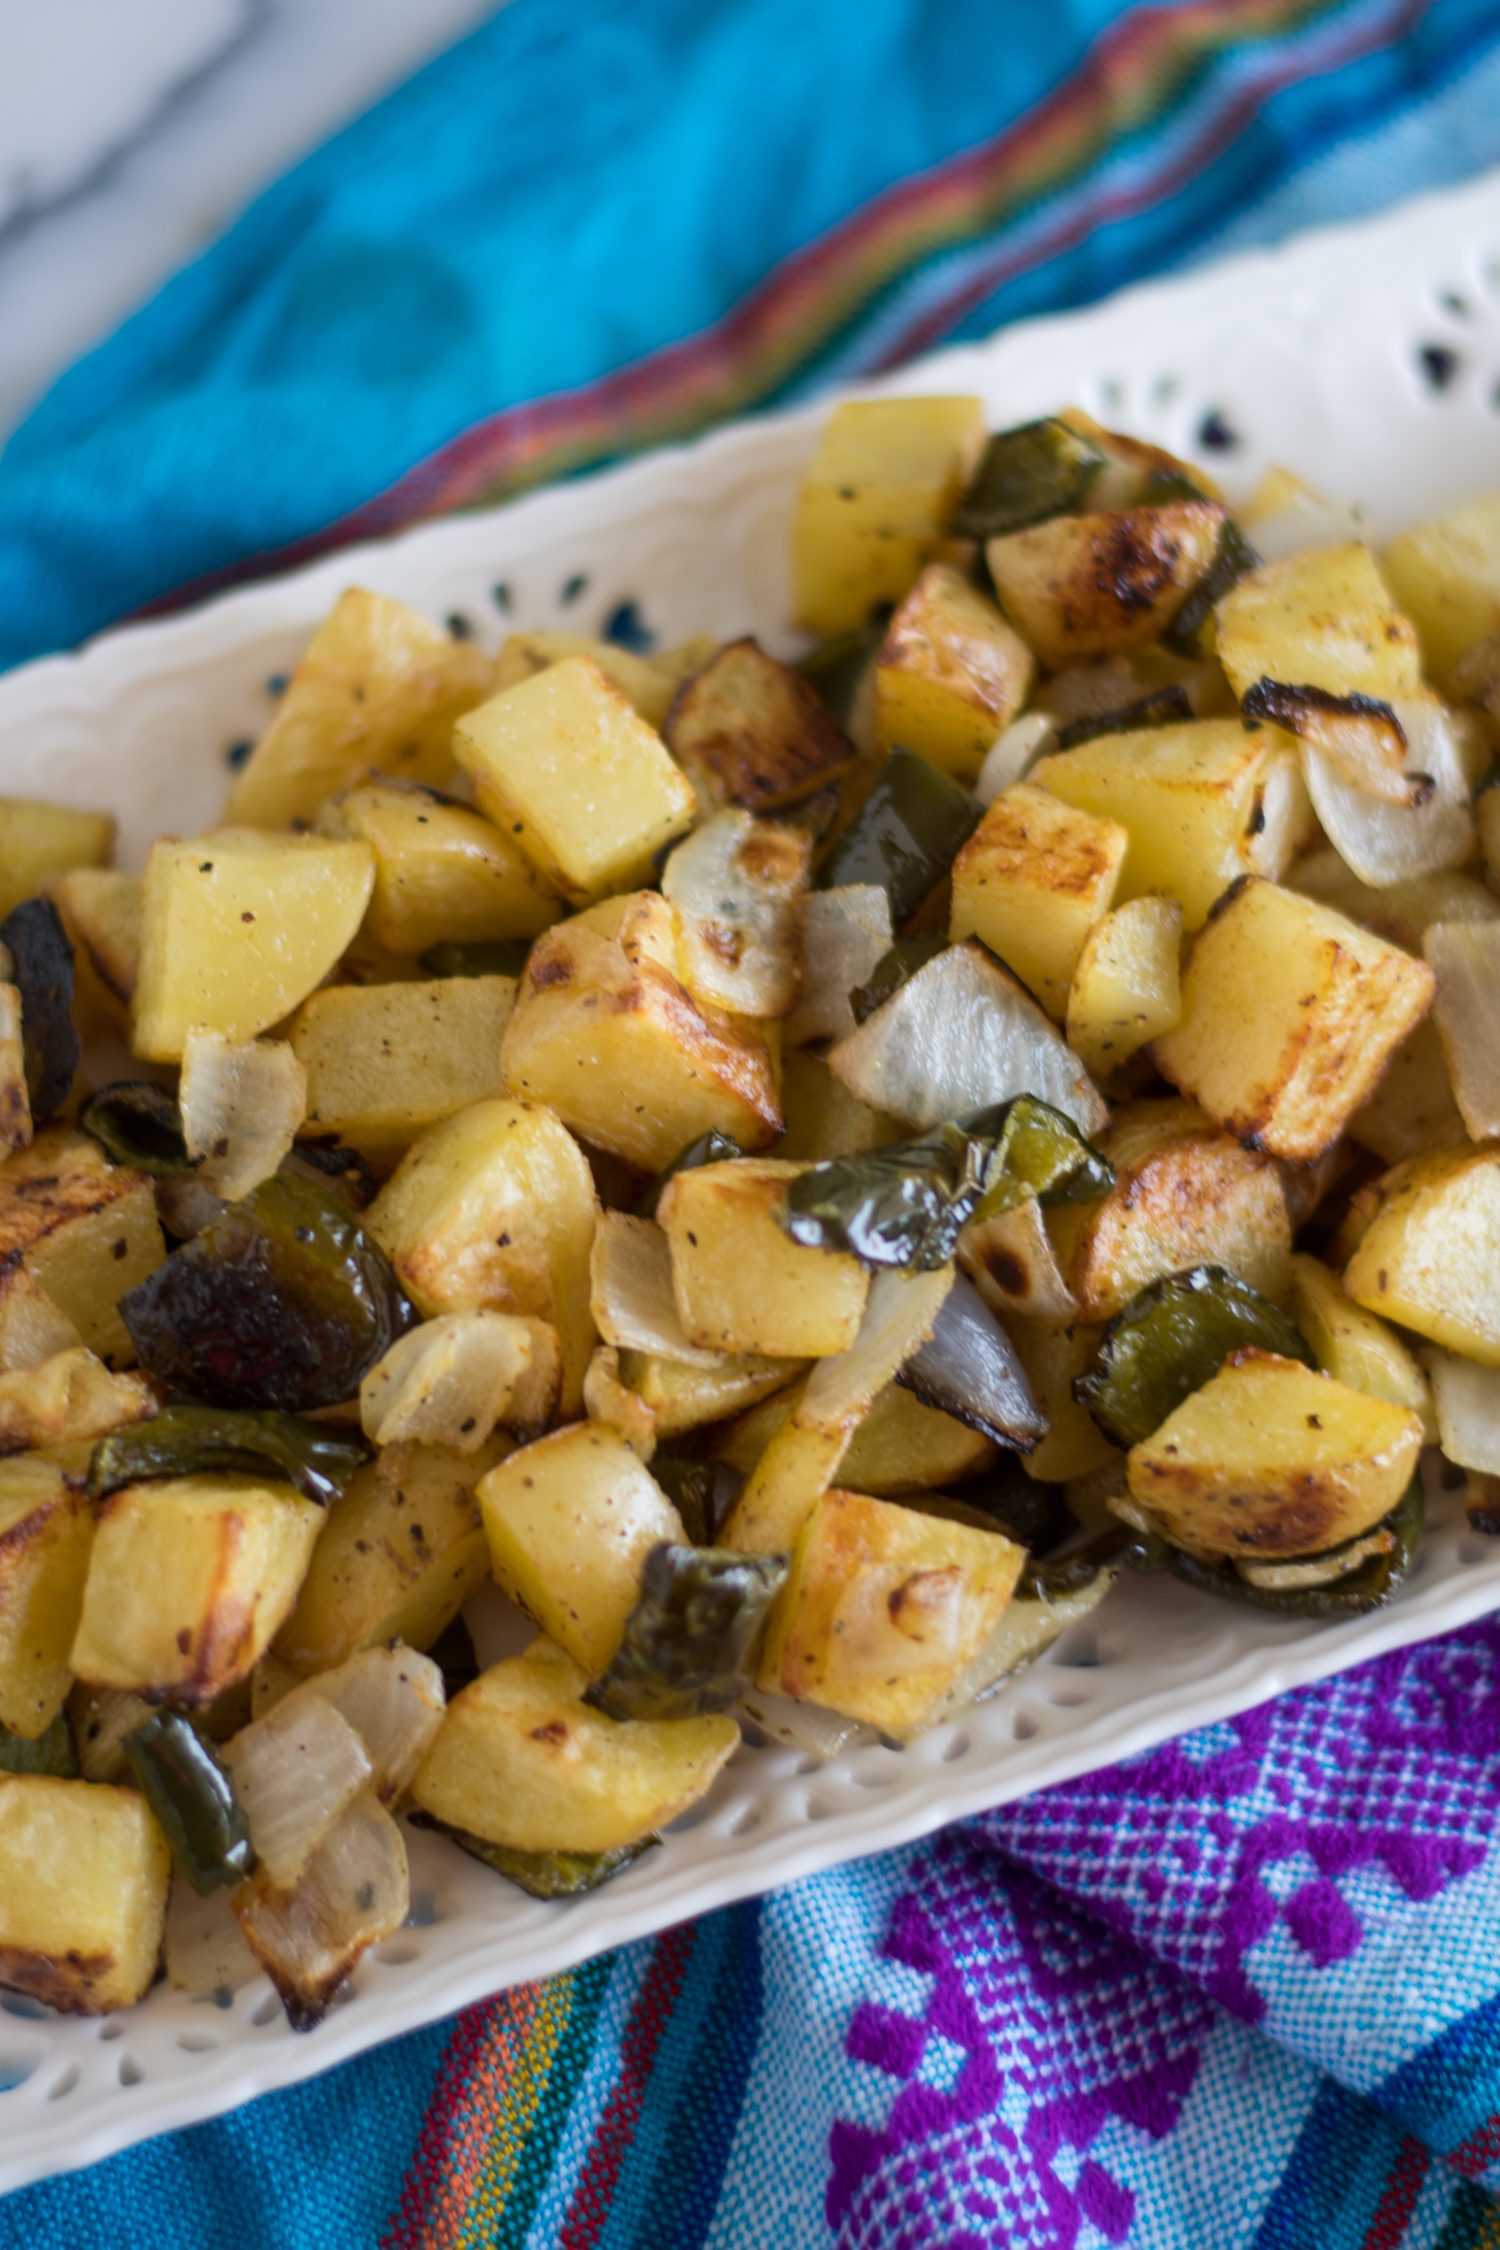 Roasted Breakfast Potatoes are the perfect accompaniment on your breakfast plate! #breakast #vegan #potatoes #side